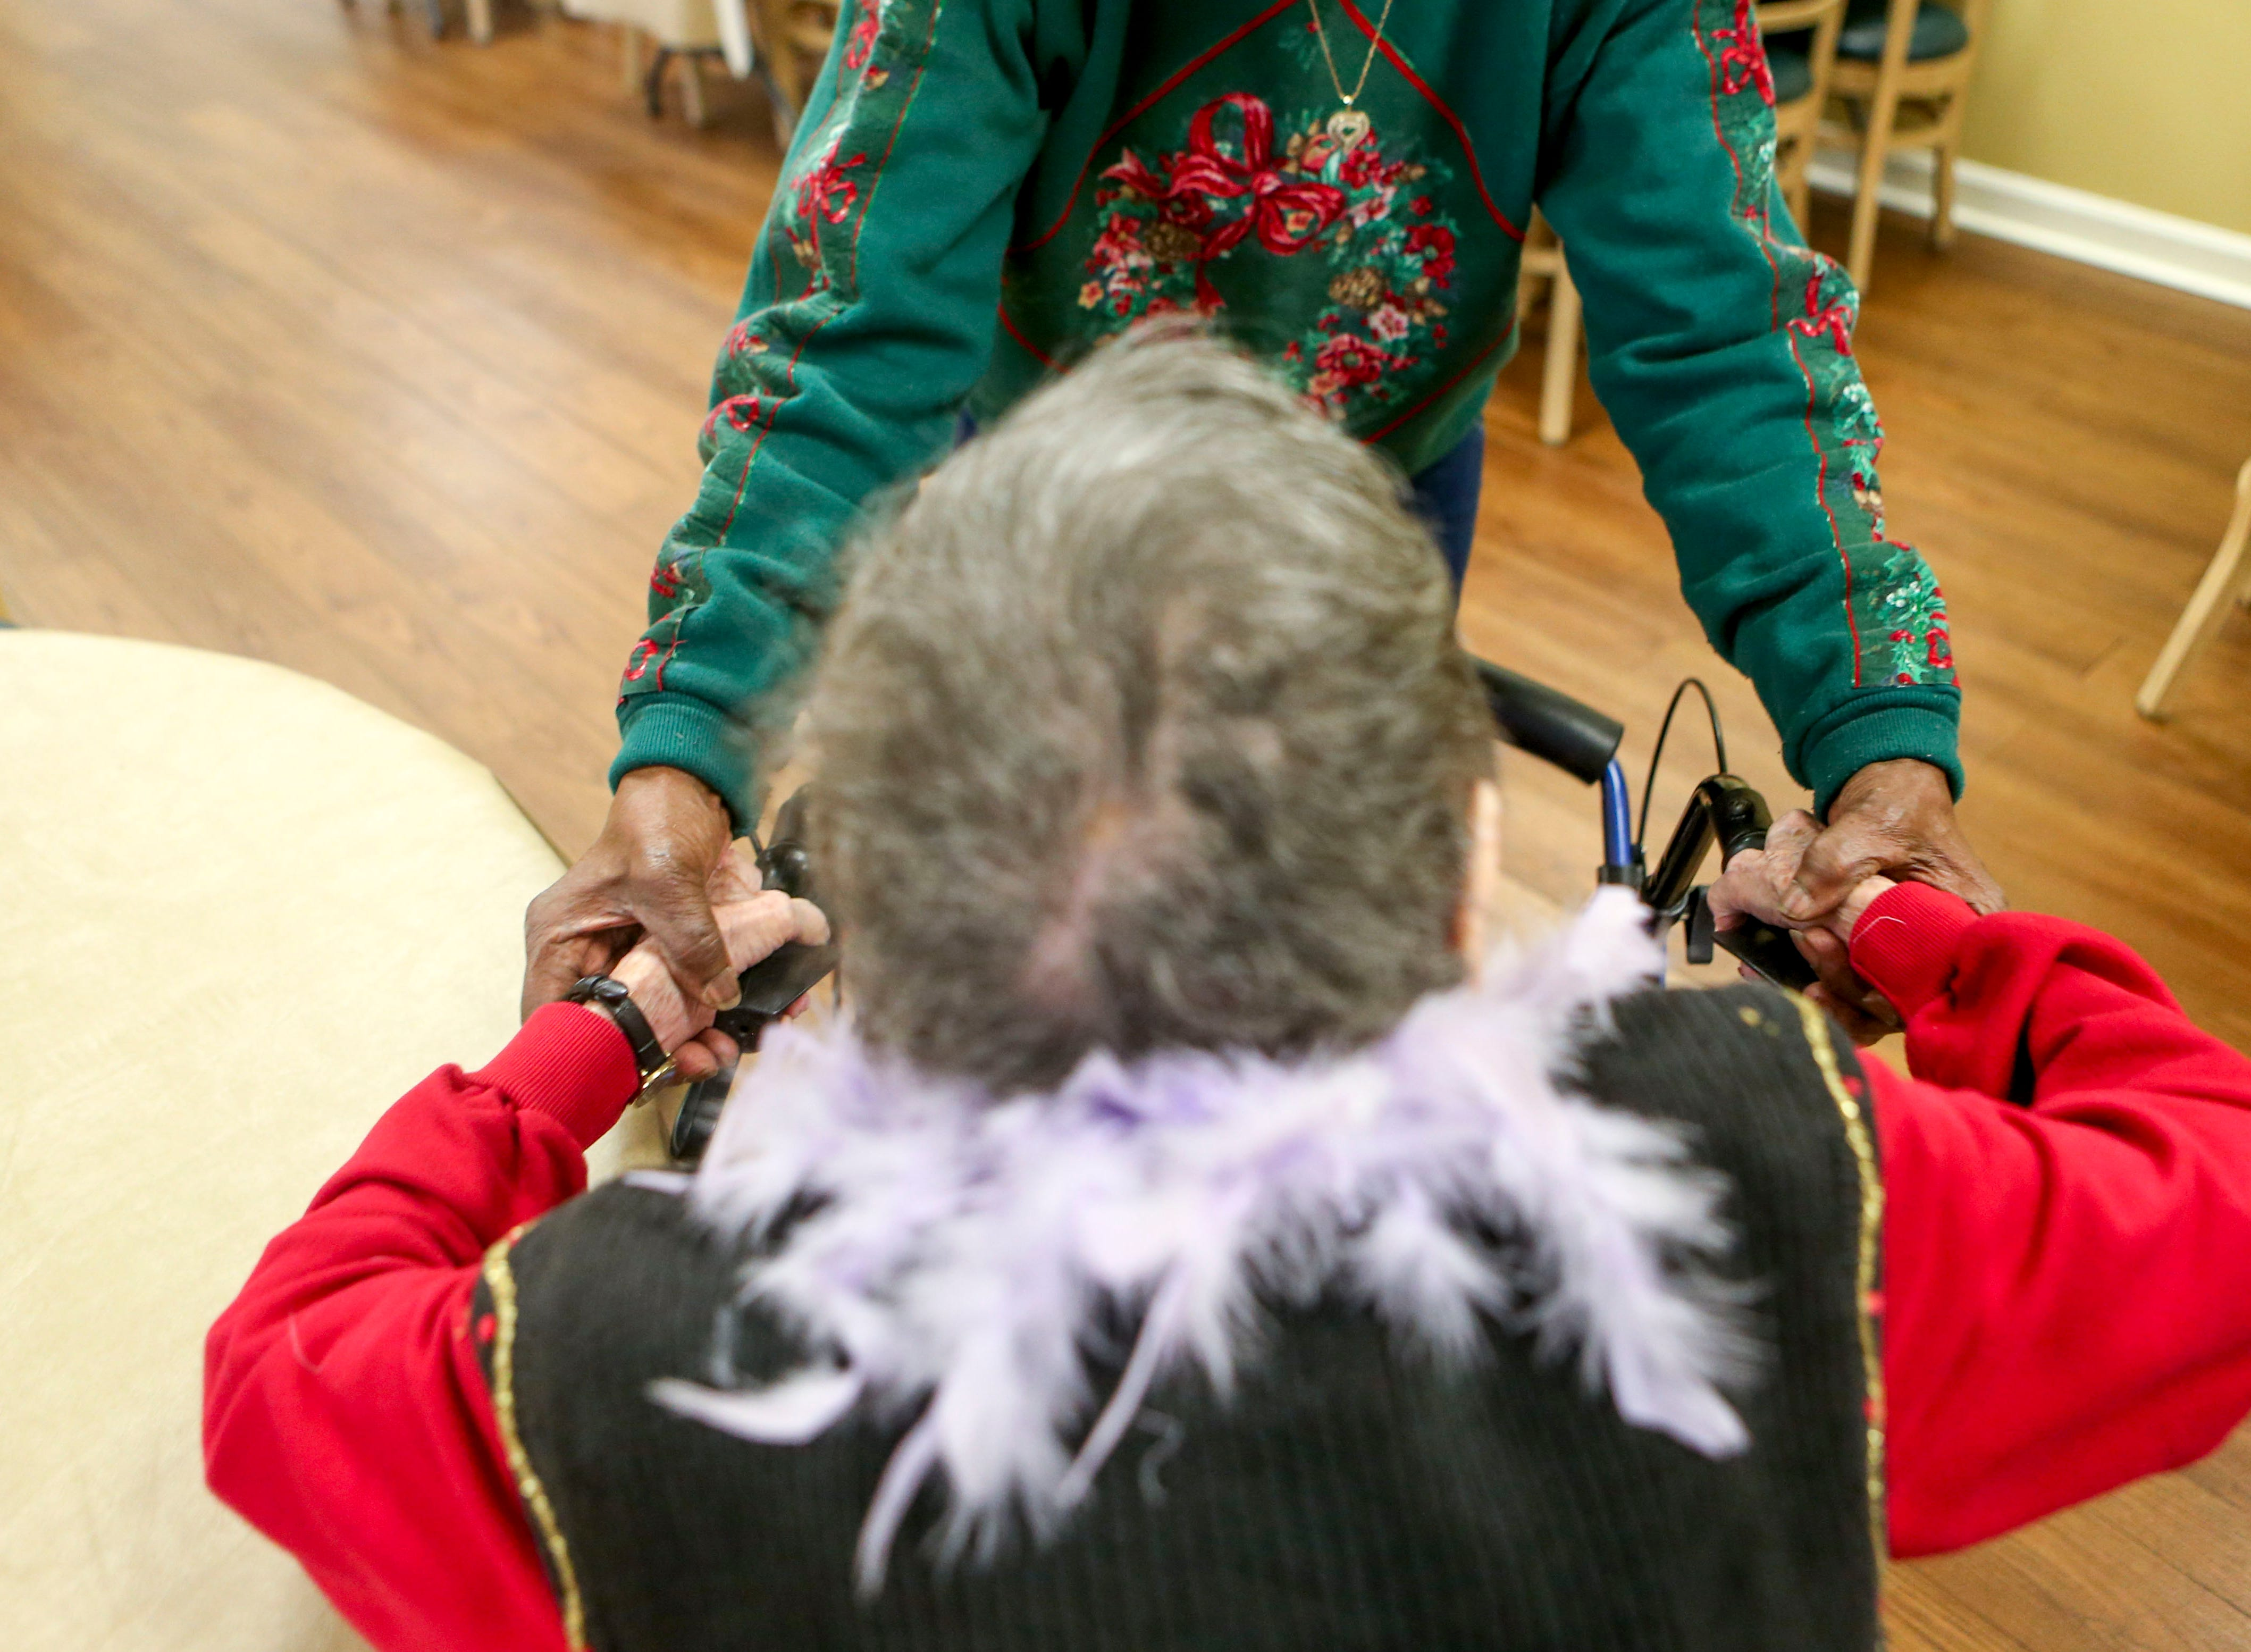 Anne Boston assists Ida Feldman get up from her chair and onto her walker at Regency Retirement Home in Jackson, Tenn., on Thursday, Dec. 20, 2018.